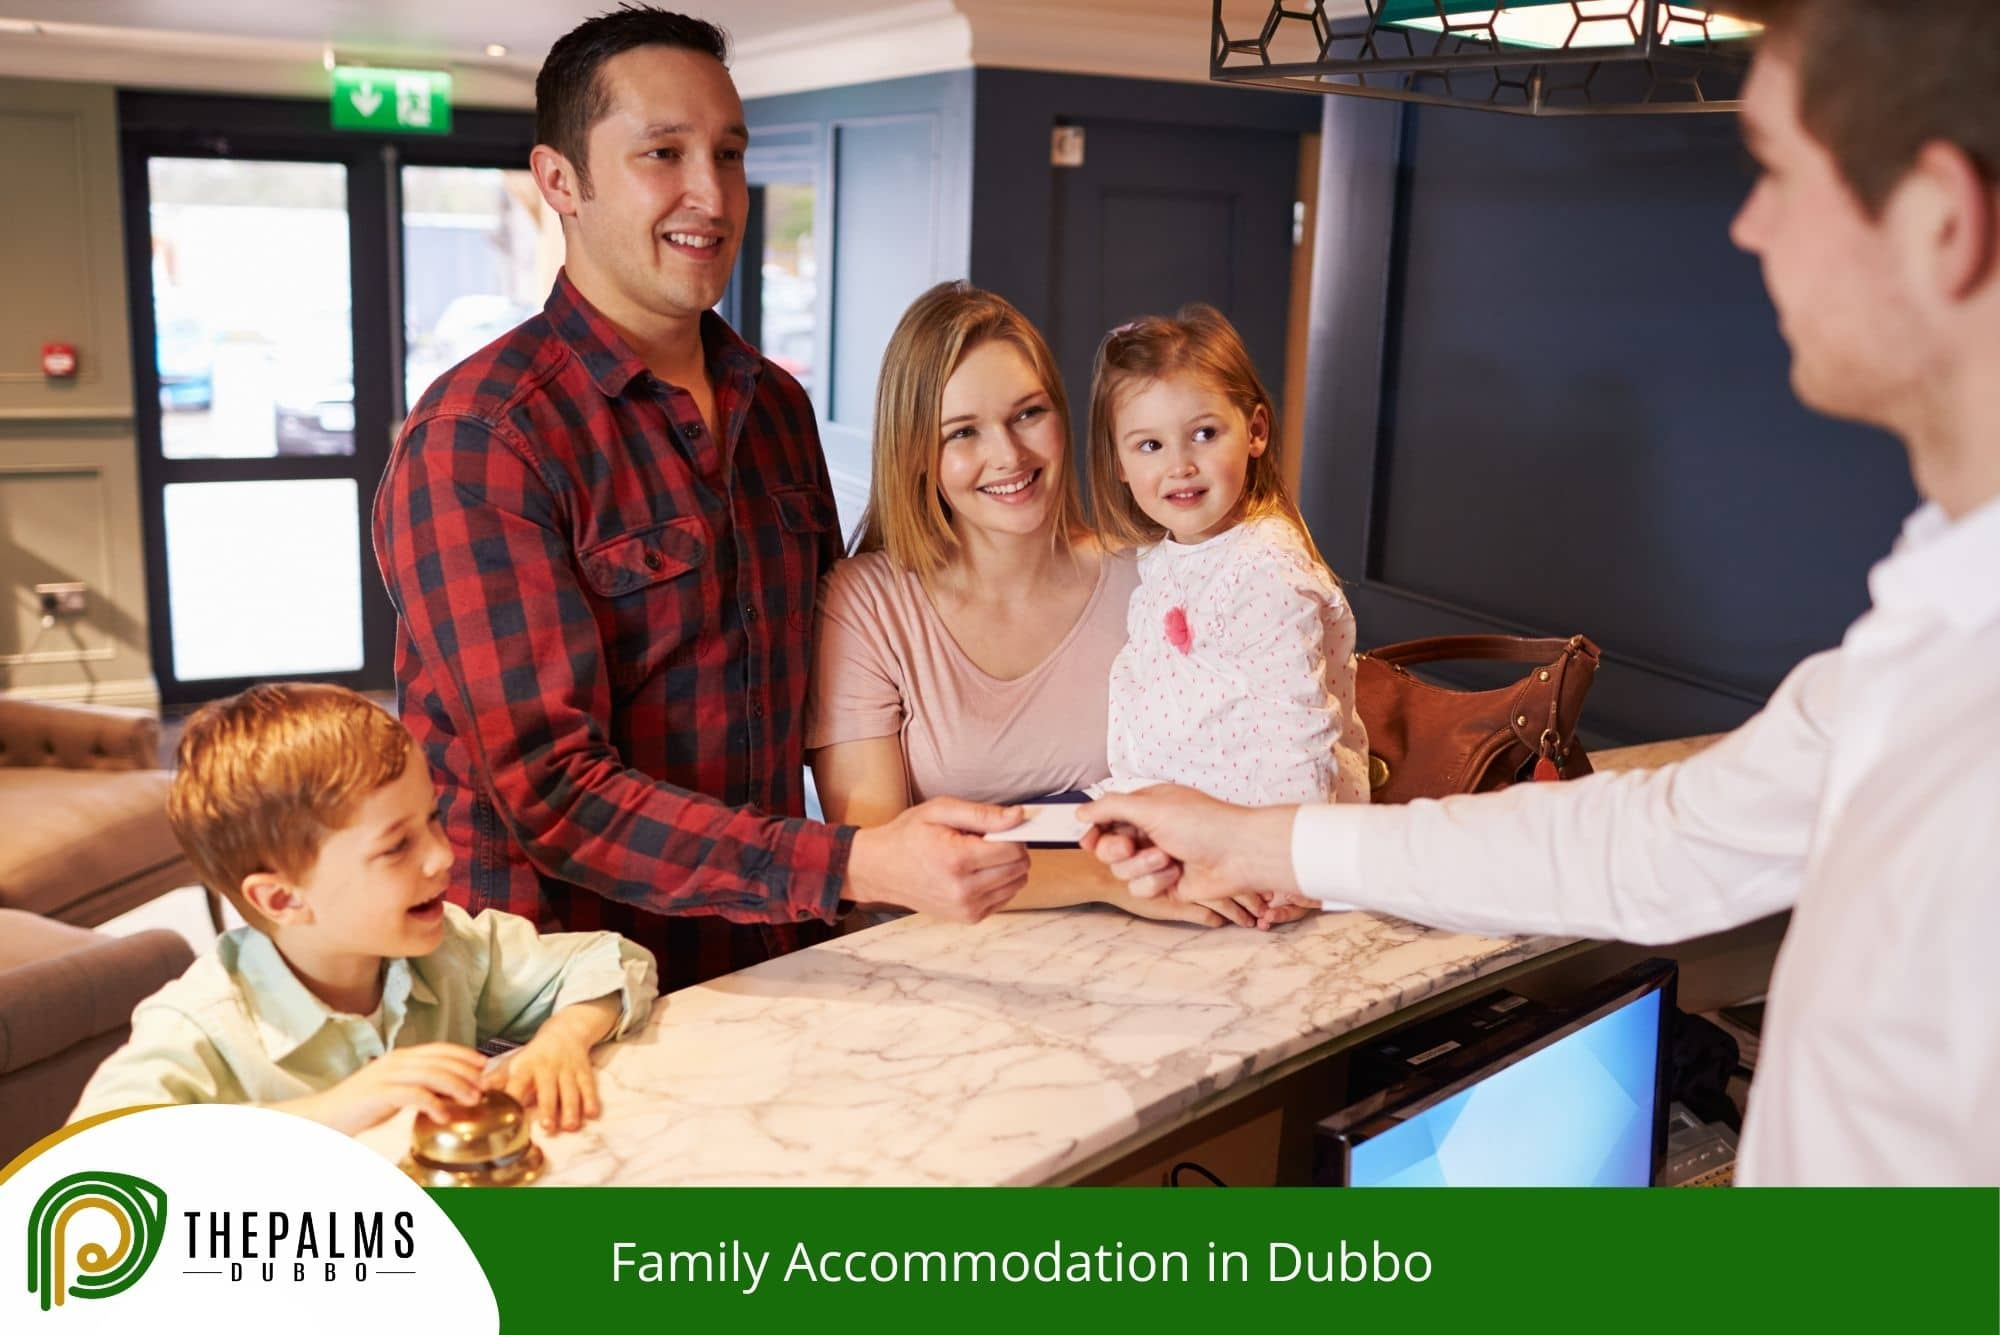 Family Accommodation in Dubbo